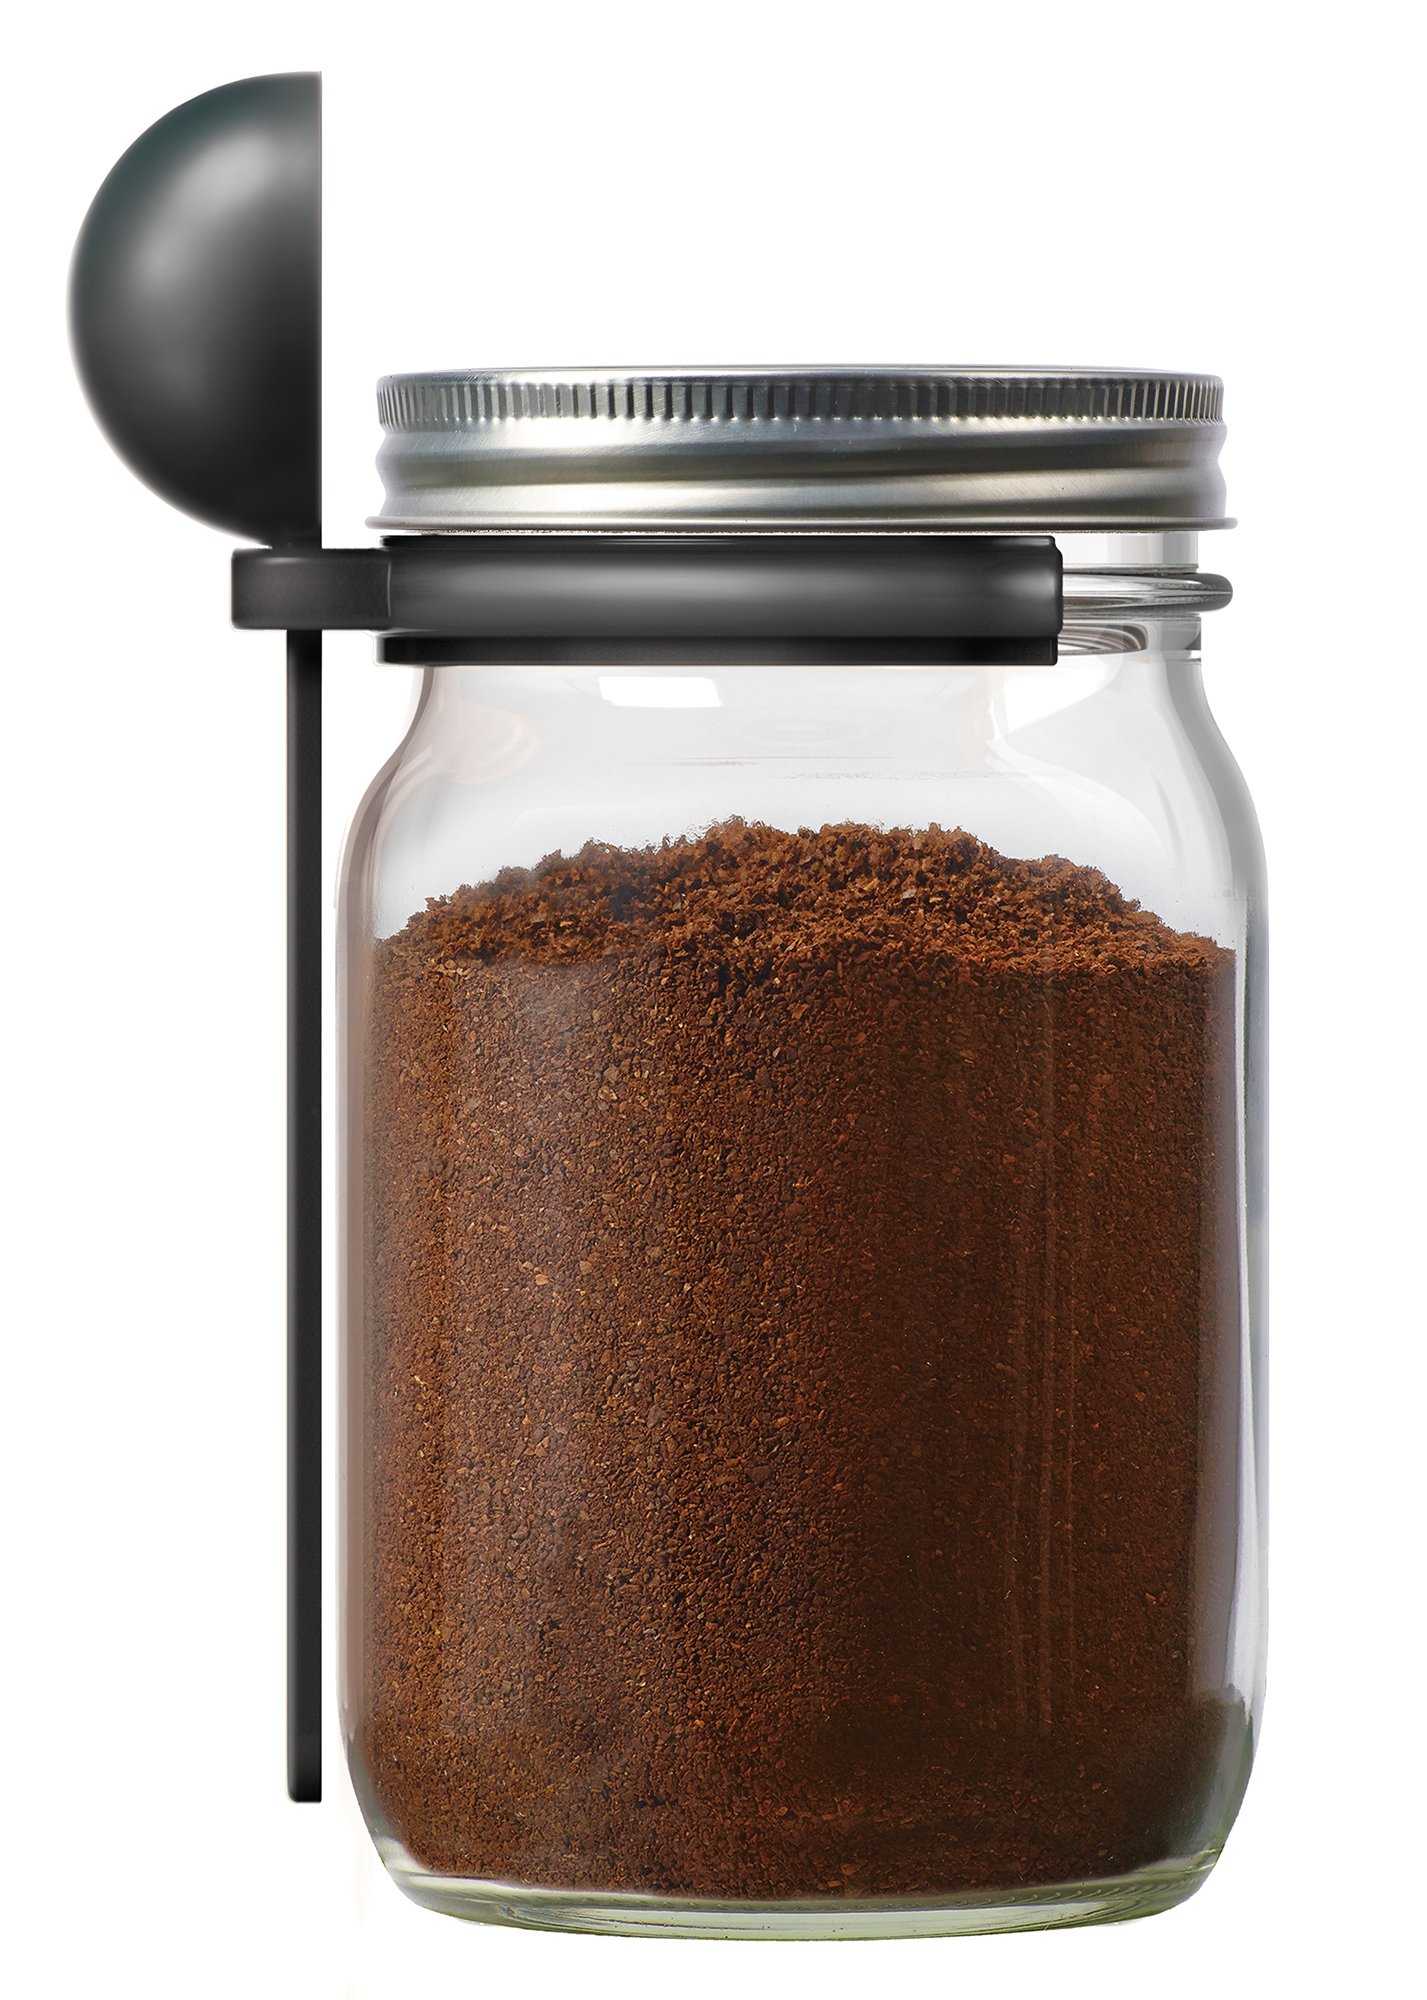 Jarware 82652 Coffee Spoon Clip for Wide Mouth Mason Jars, 6''